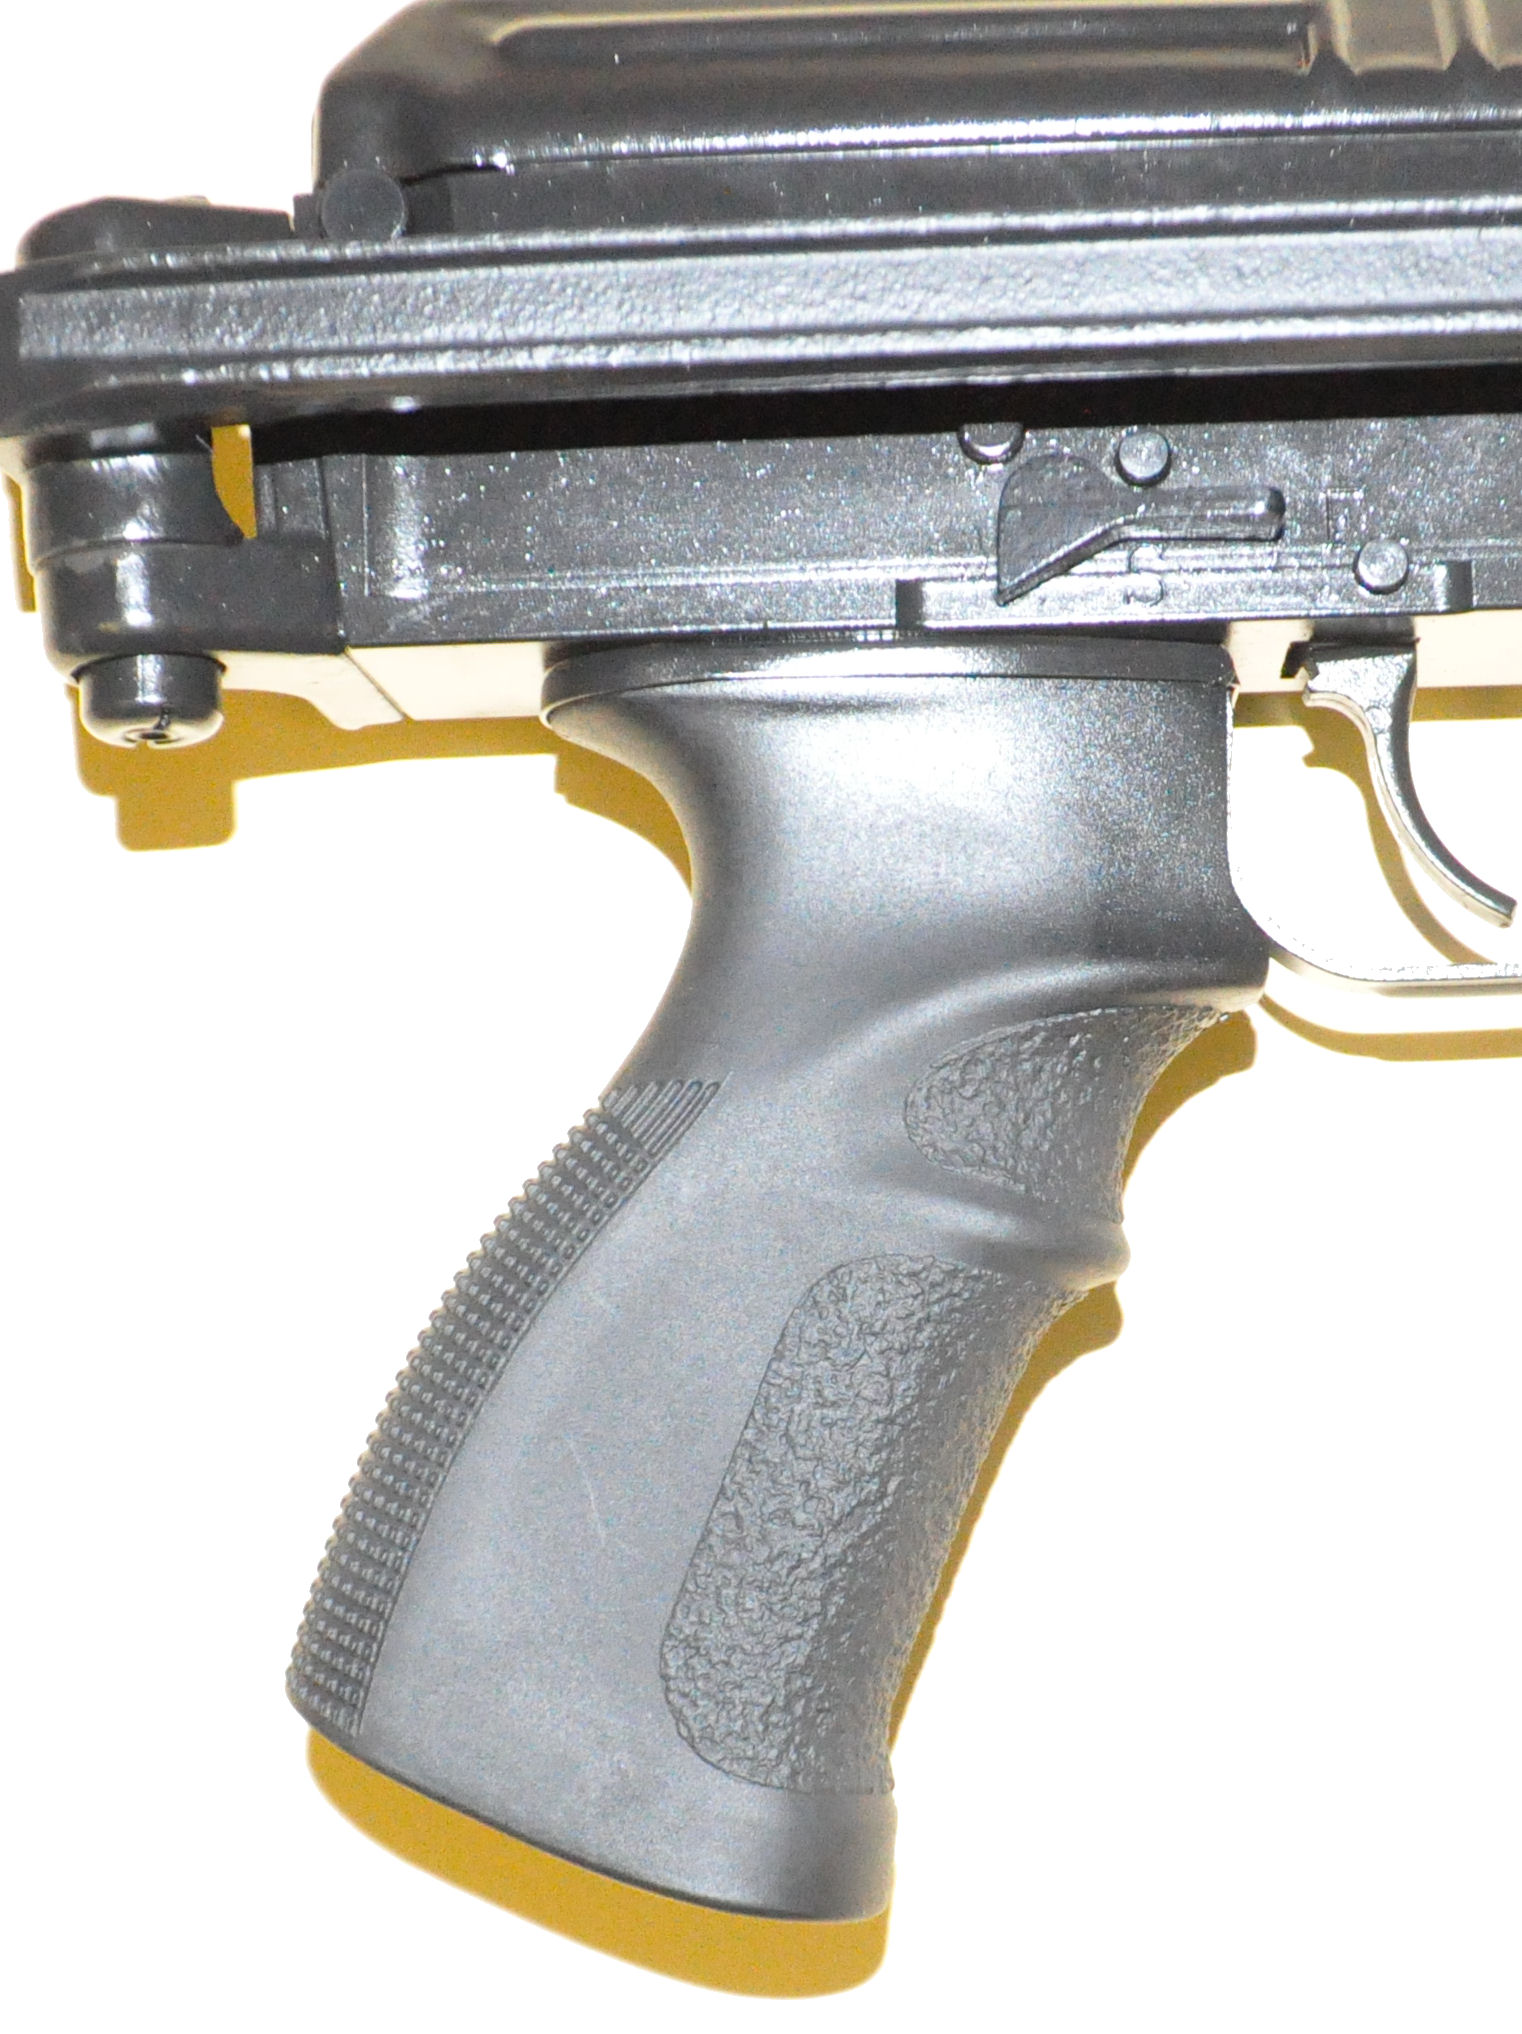 VZ 58 Ergonomic grip